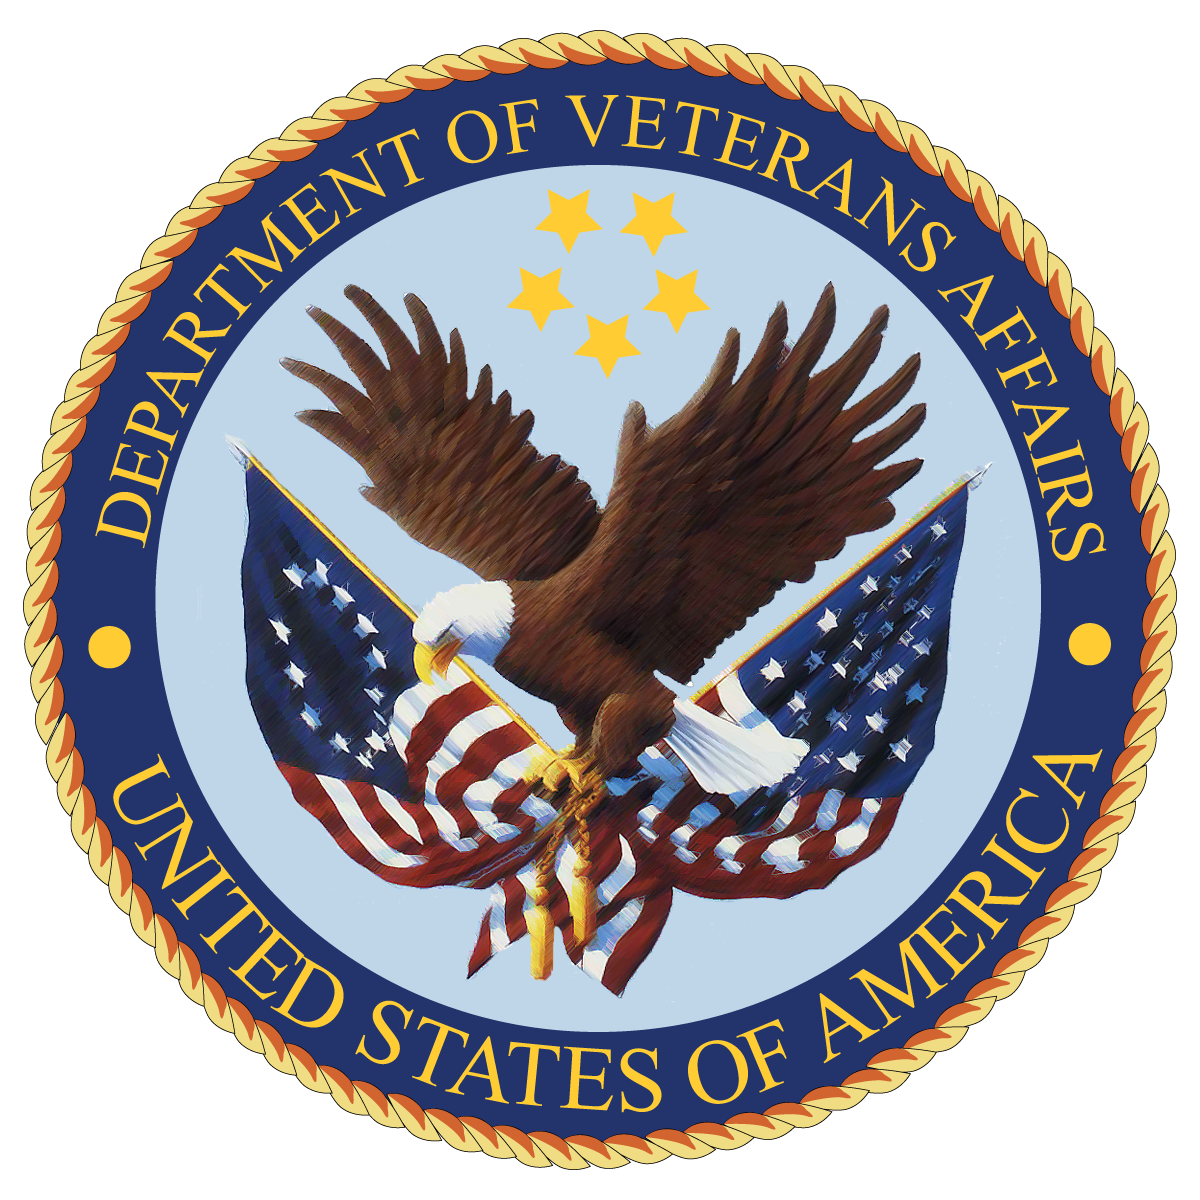 Department of Veterans Affairs circle emblem